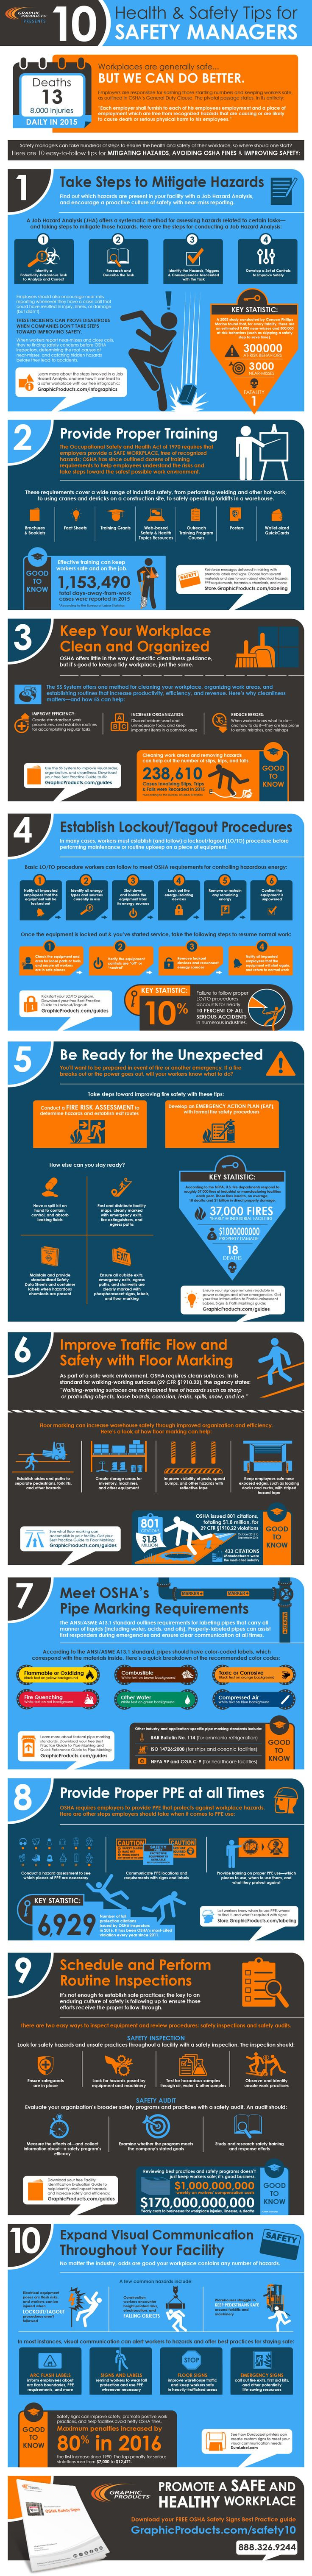 10 Health and Safety Tips for Safety Managers   Safety, Safety Leadership